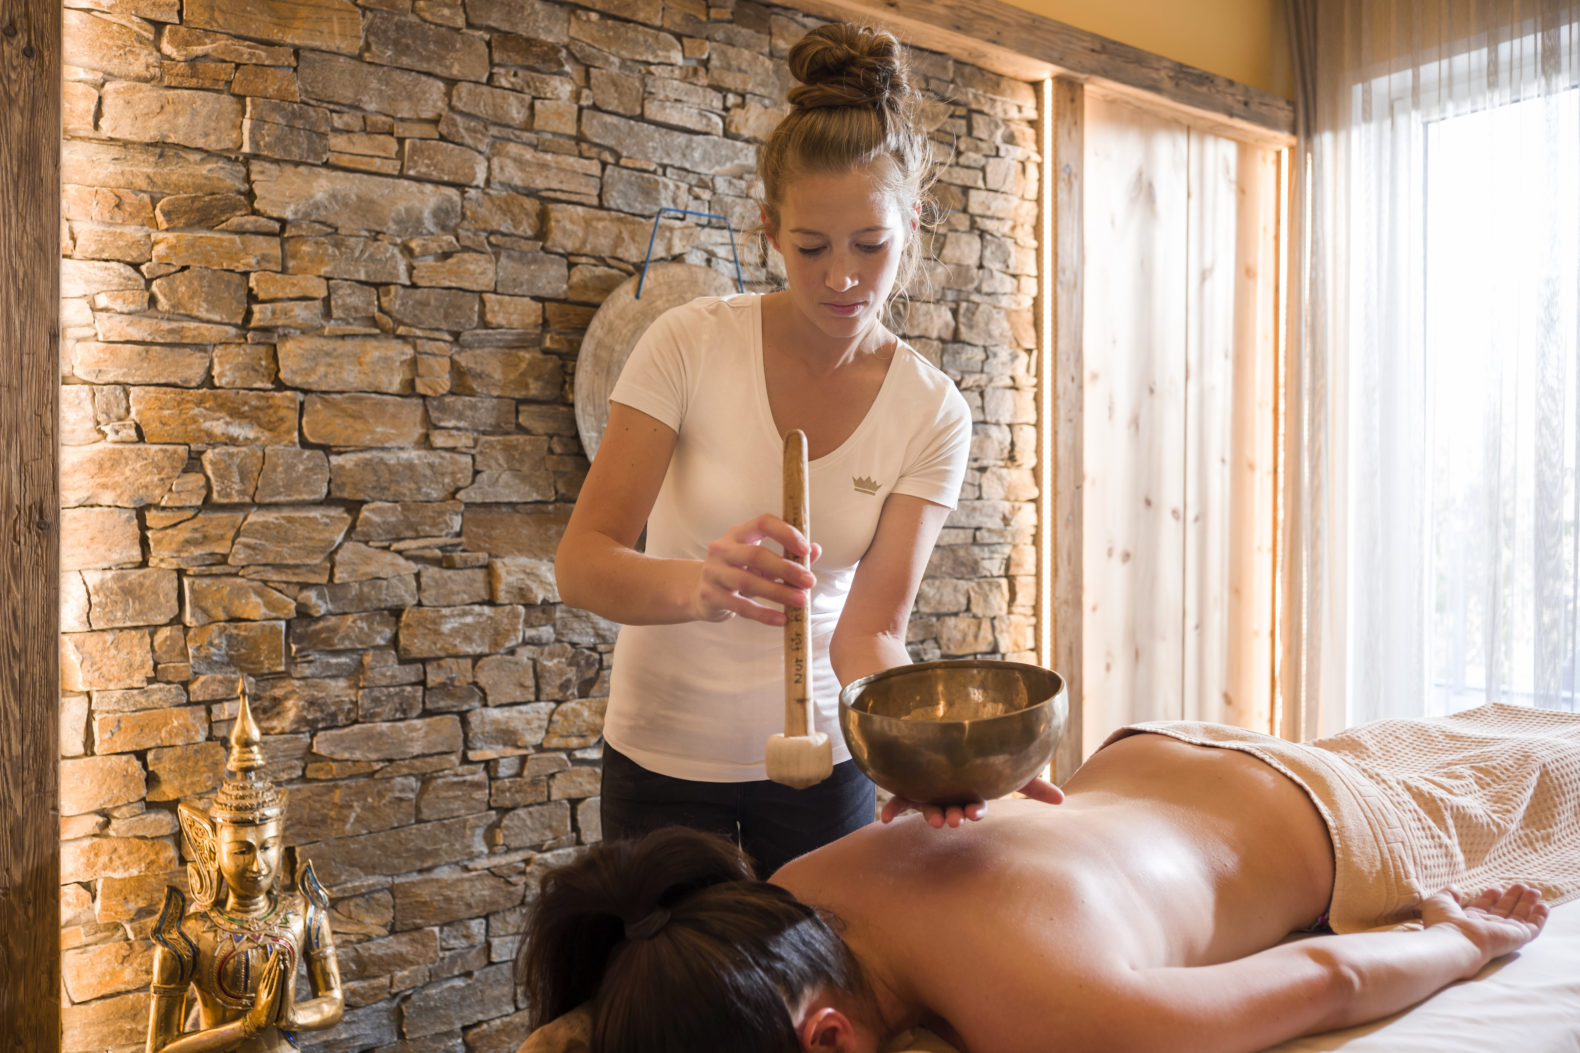 sound-healing-massage-spa-treatment-relax-energy-budda-panorama-royal-hotel-austria